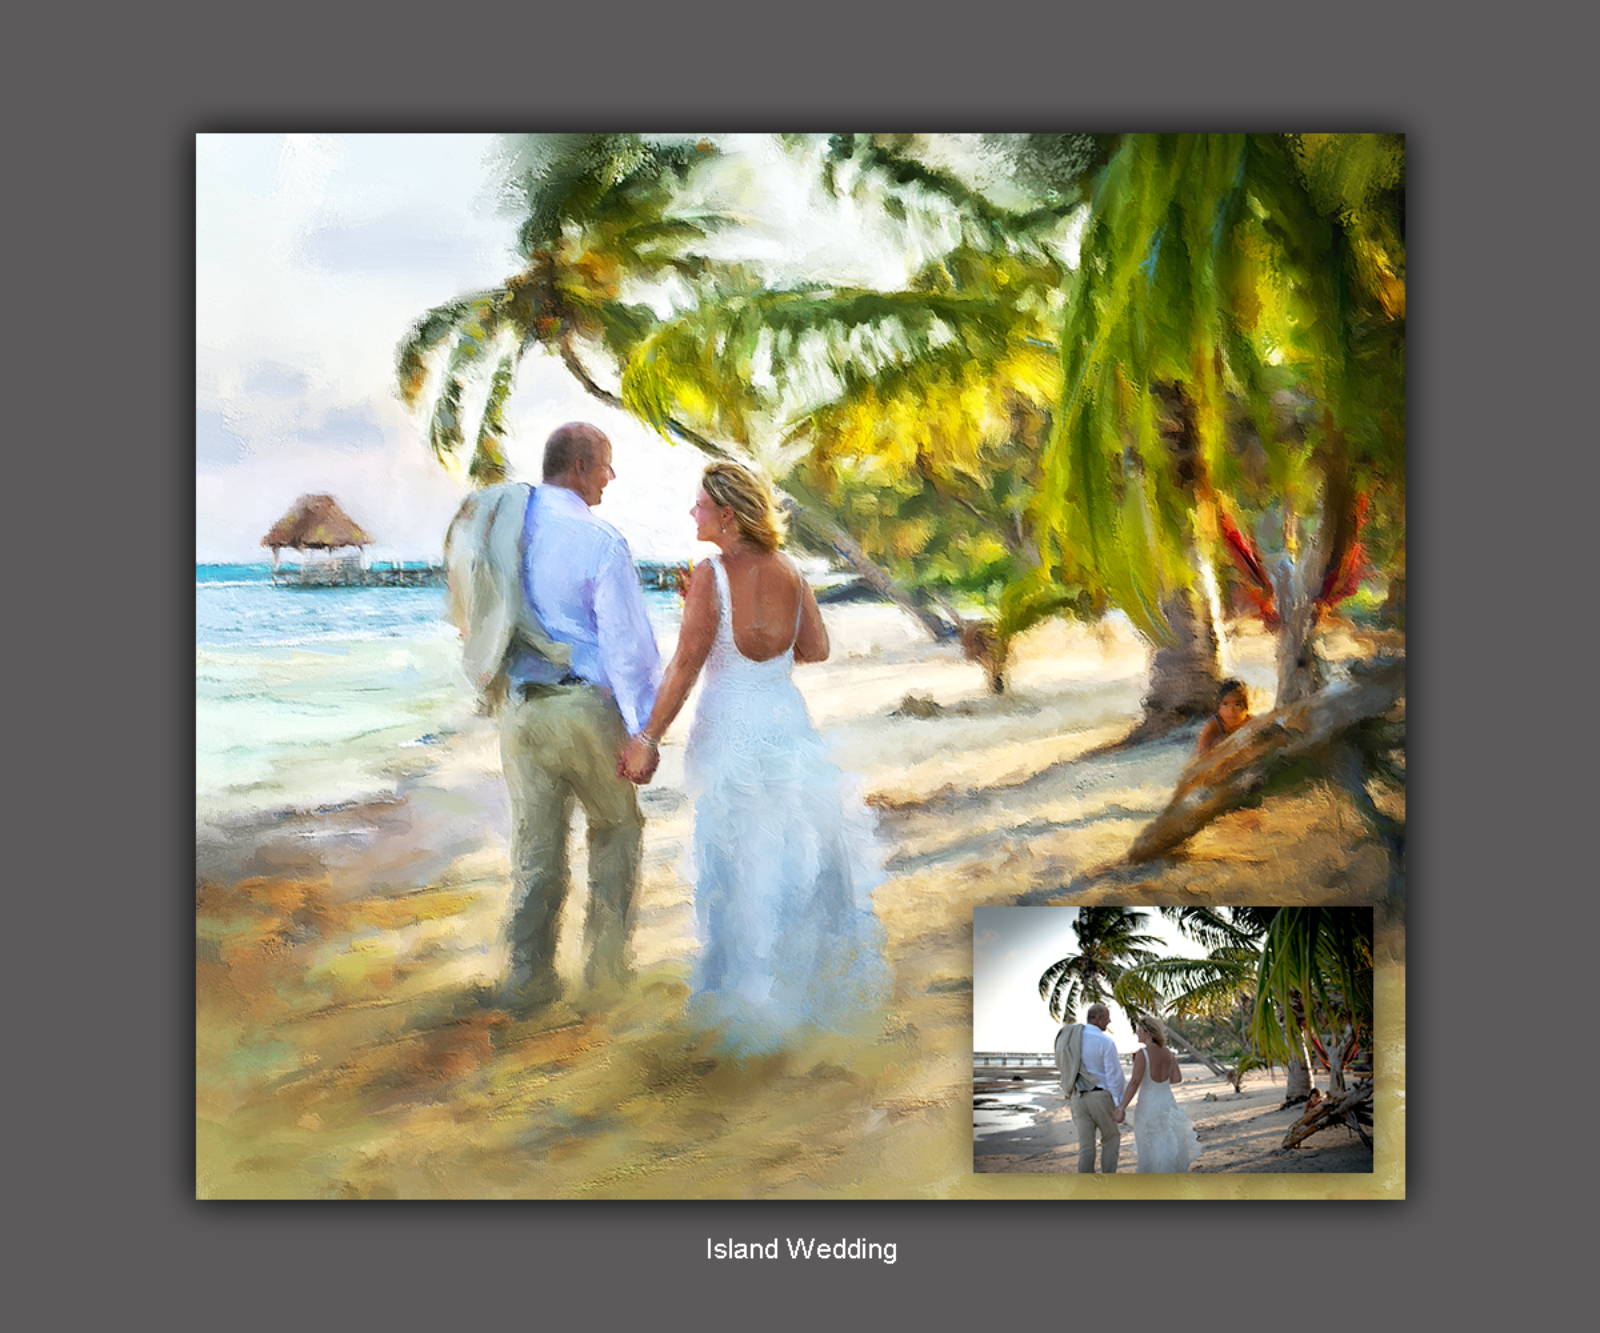 Pam Brodersen - 8 Island Wedding